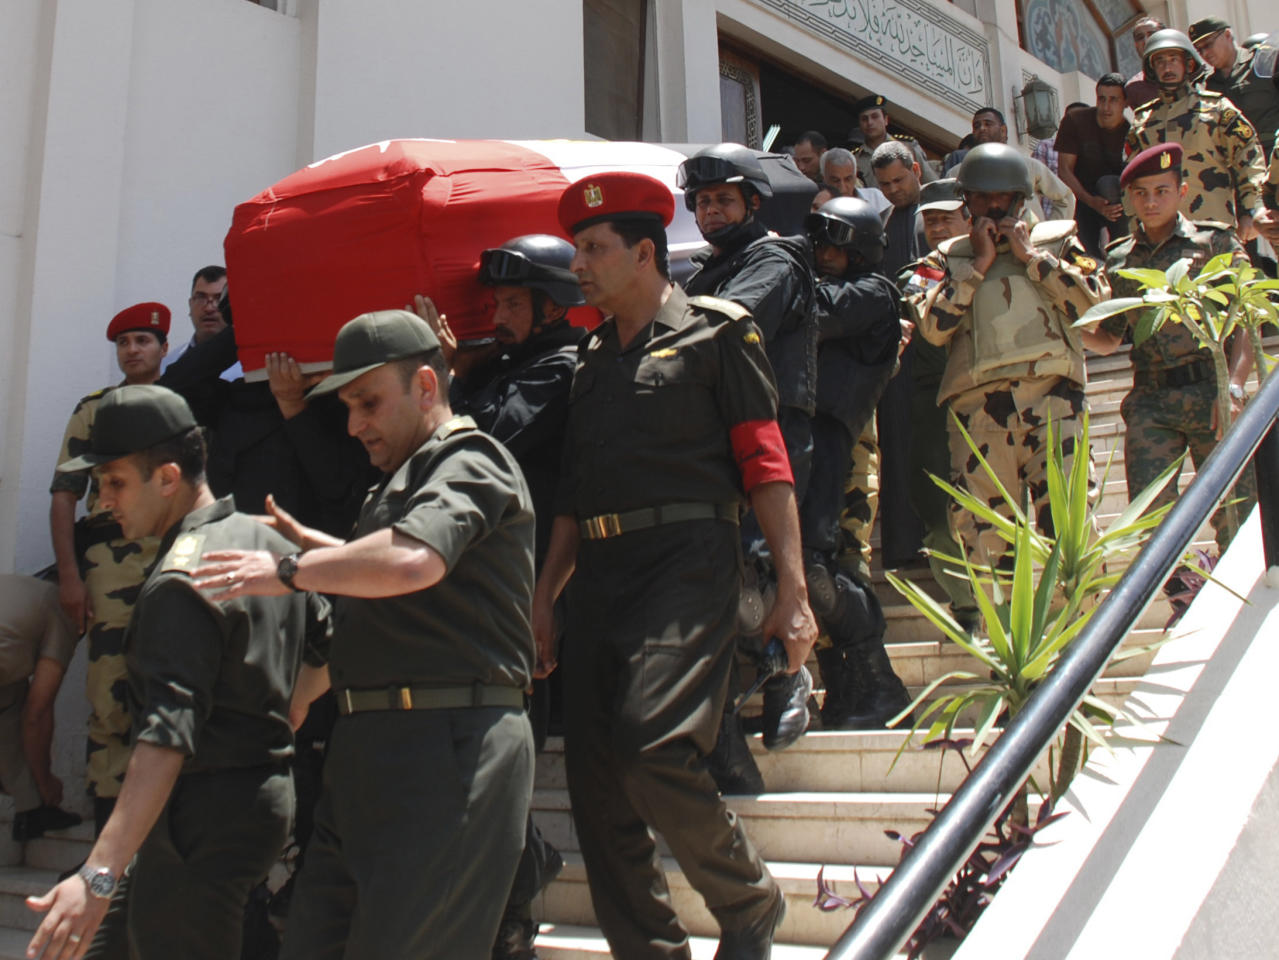 Egyptian commandos carry the coffin of their comrade, Cpl. Samir Anwar Ismail, who was killed in clashes with protesters in Cairo, Egypt, Saturday, May 5, 2012. Lawyers say authorities have detained over 300 Egyptian protesters including 18 women following clashes outside the country's Defense Ministry, accused of attacking troops and disrupting public order.(AP Photo)